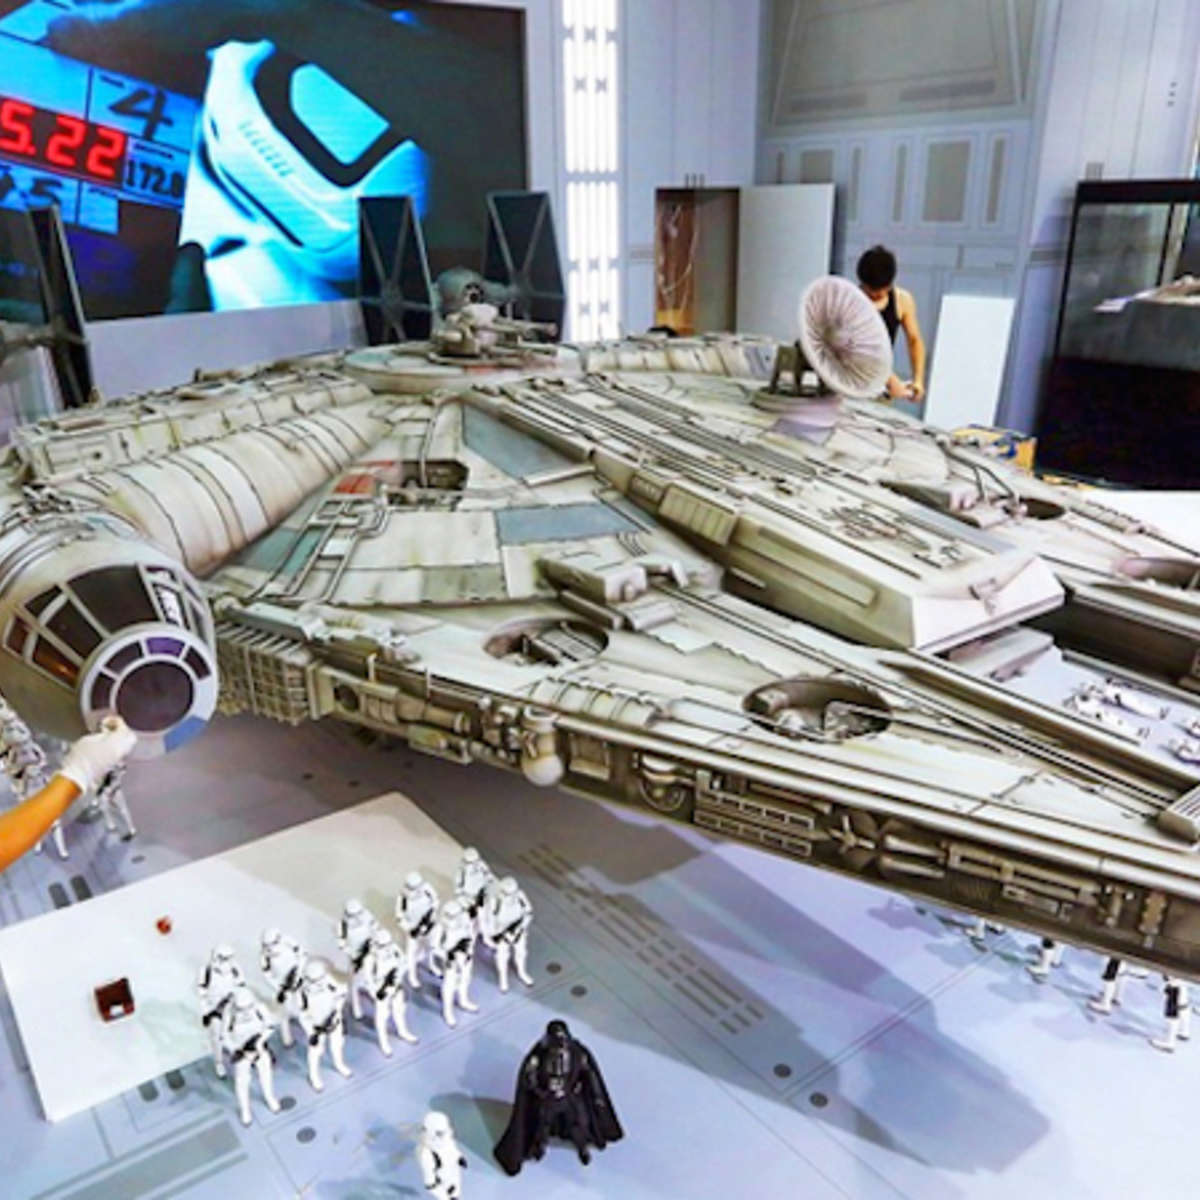 new-photos-of-hot-toys-massive-18-foot-long-millennium-falcon_1.jpg